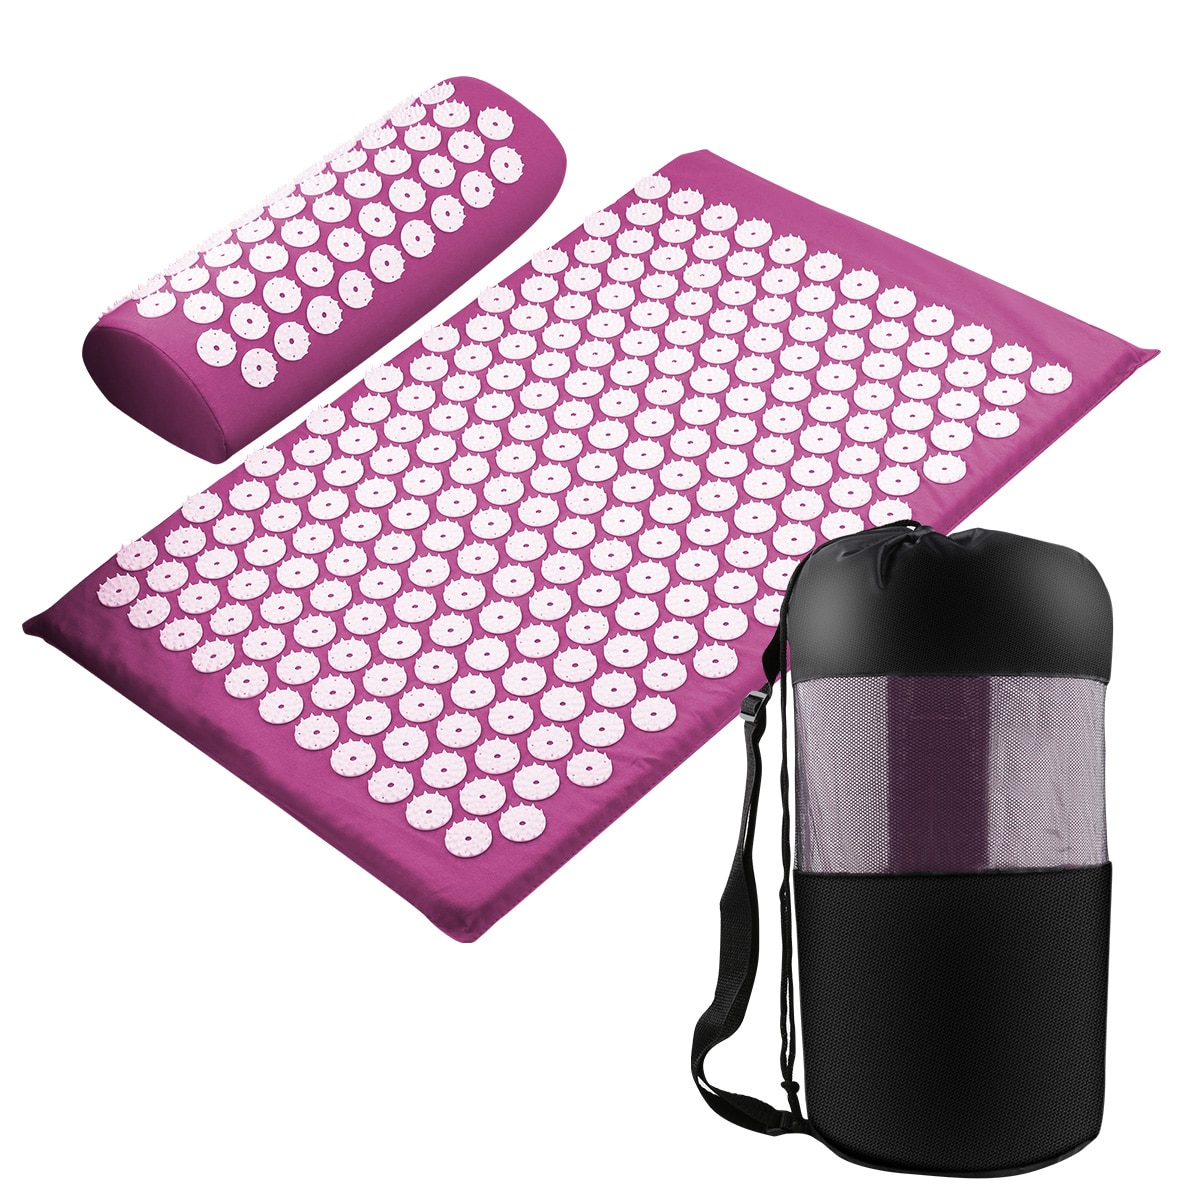 Acupressure Mat Massage Relieve Stress Back Body Pain Spike Cushion yoga  Acupuncture mat